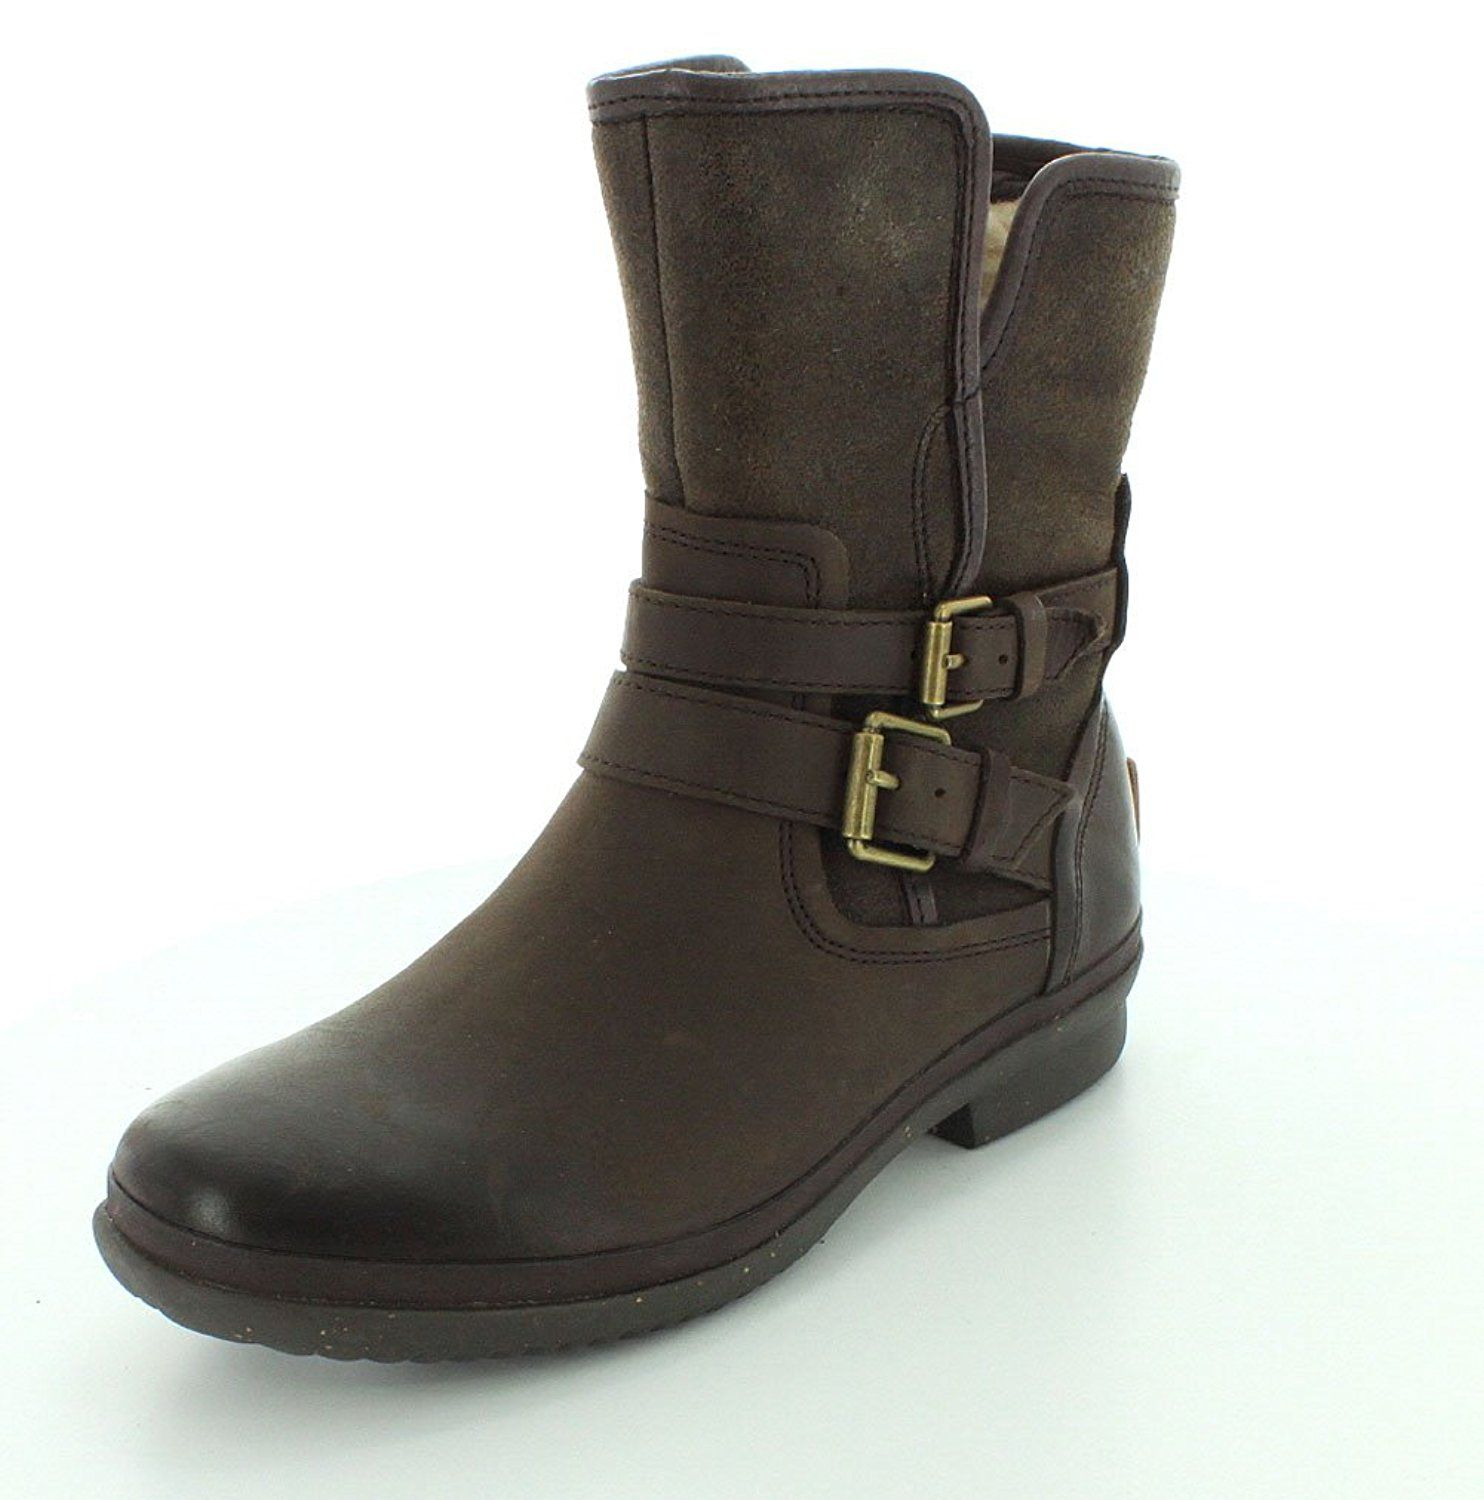 Australia Women's Simmens lined with Plush Wool Leather Boot